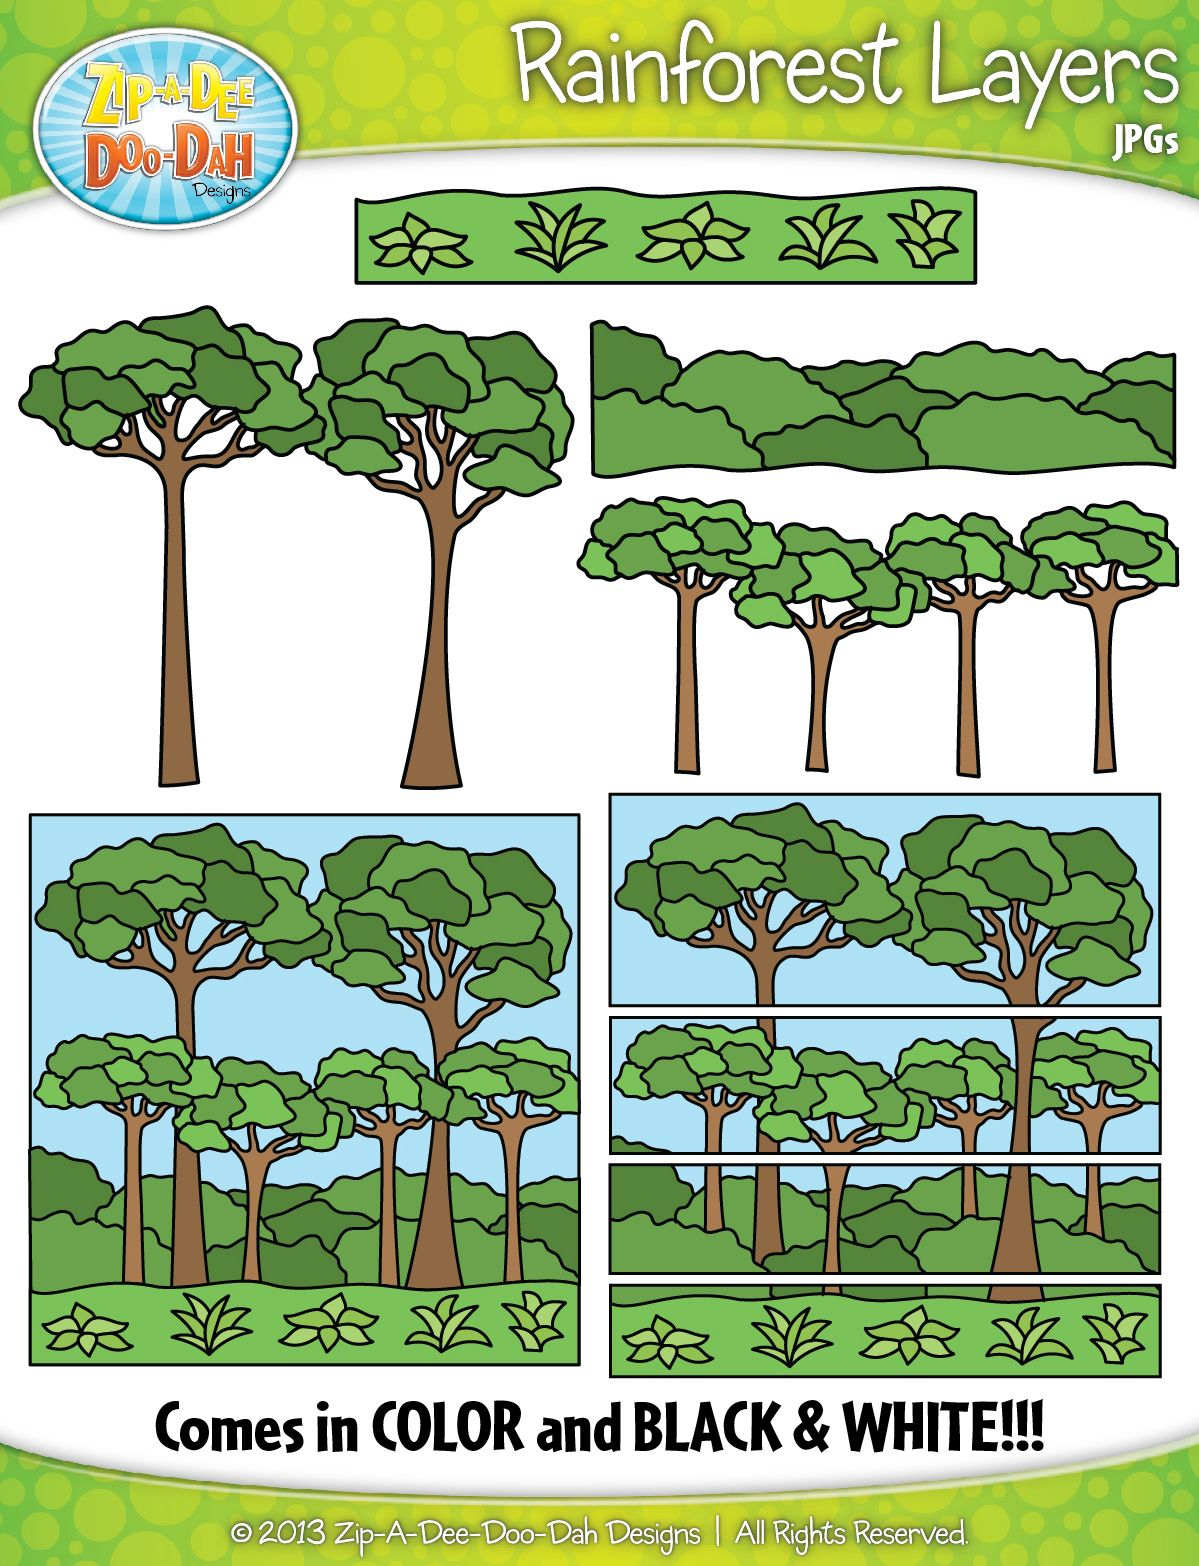 Rainforest Layers Clipart Zip A Dee Doo Dah Designs